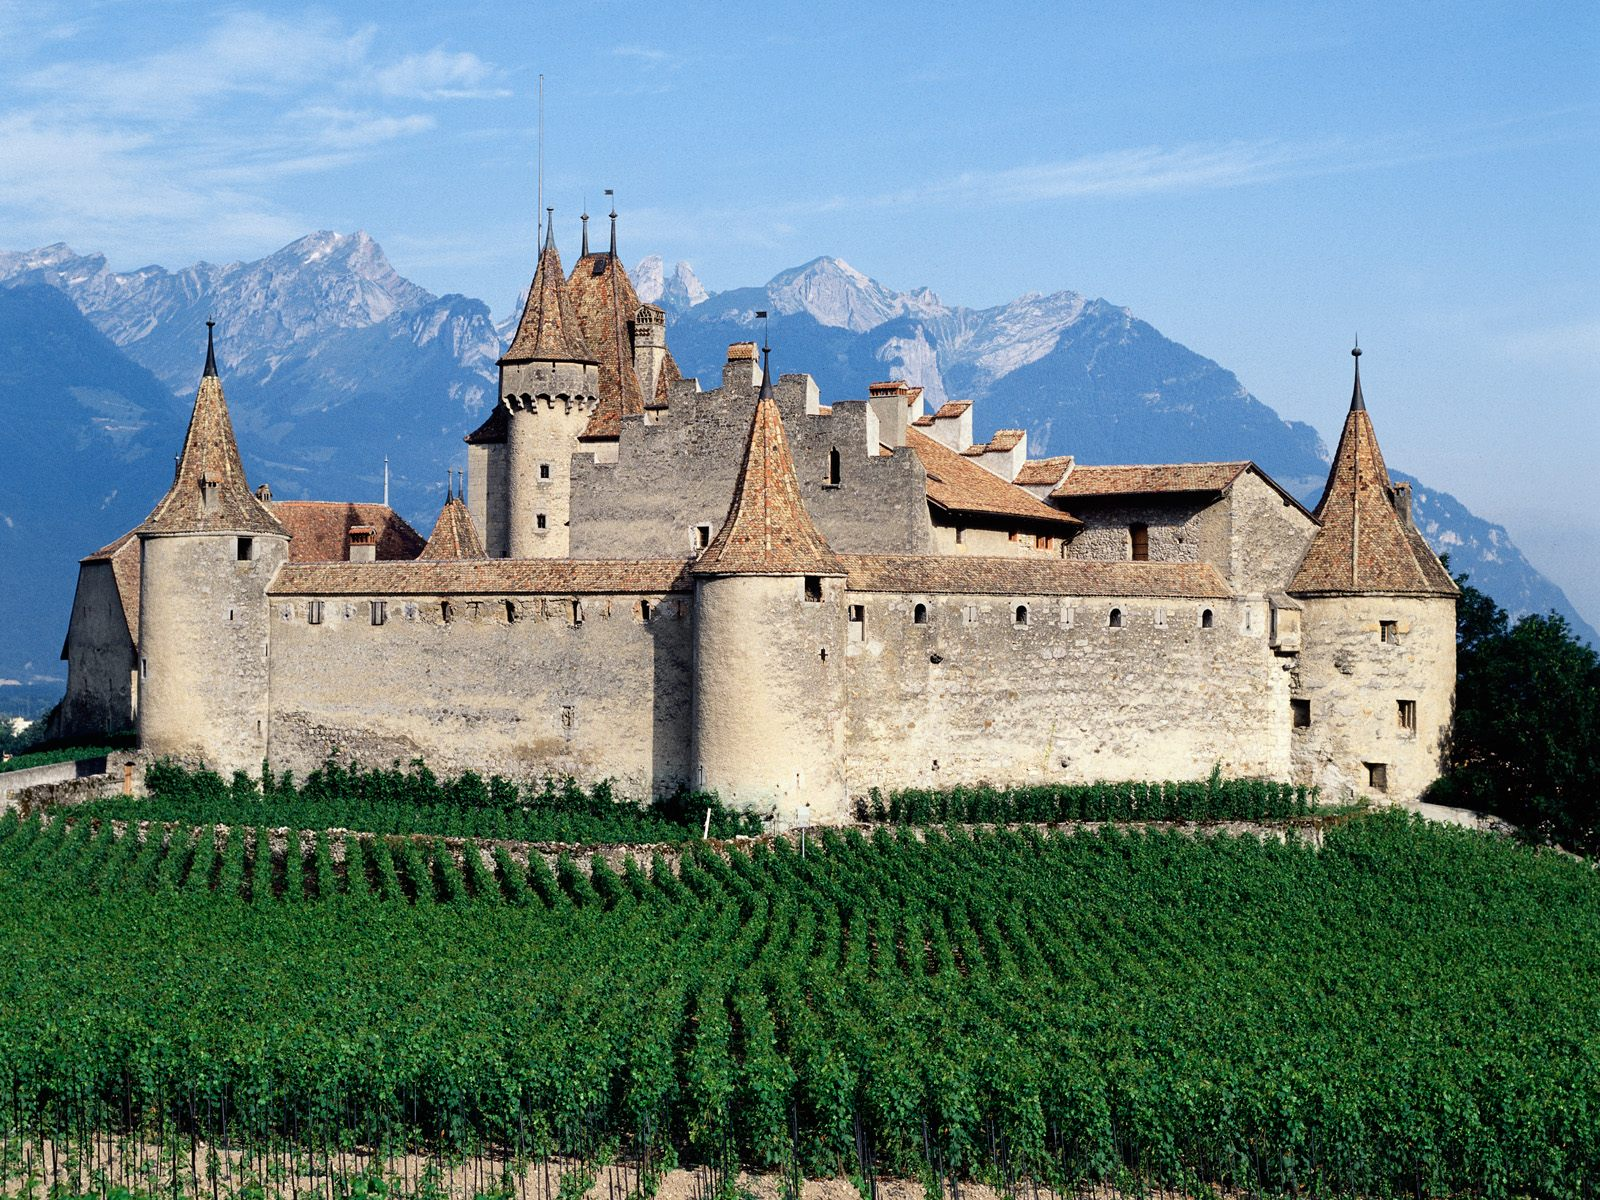 Chateau_d'Aigle_Switzerland.jpg